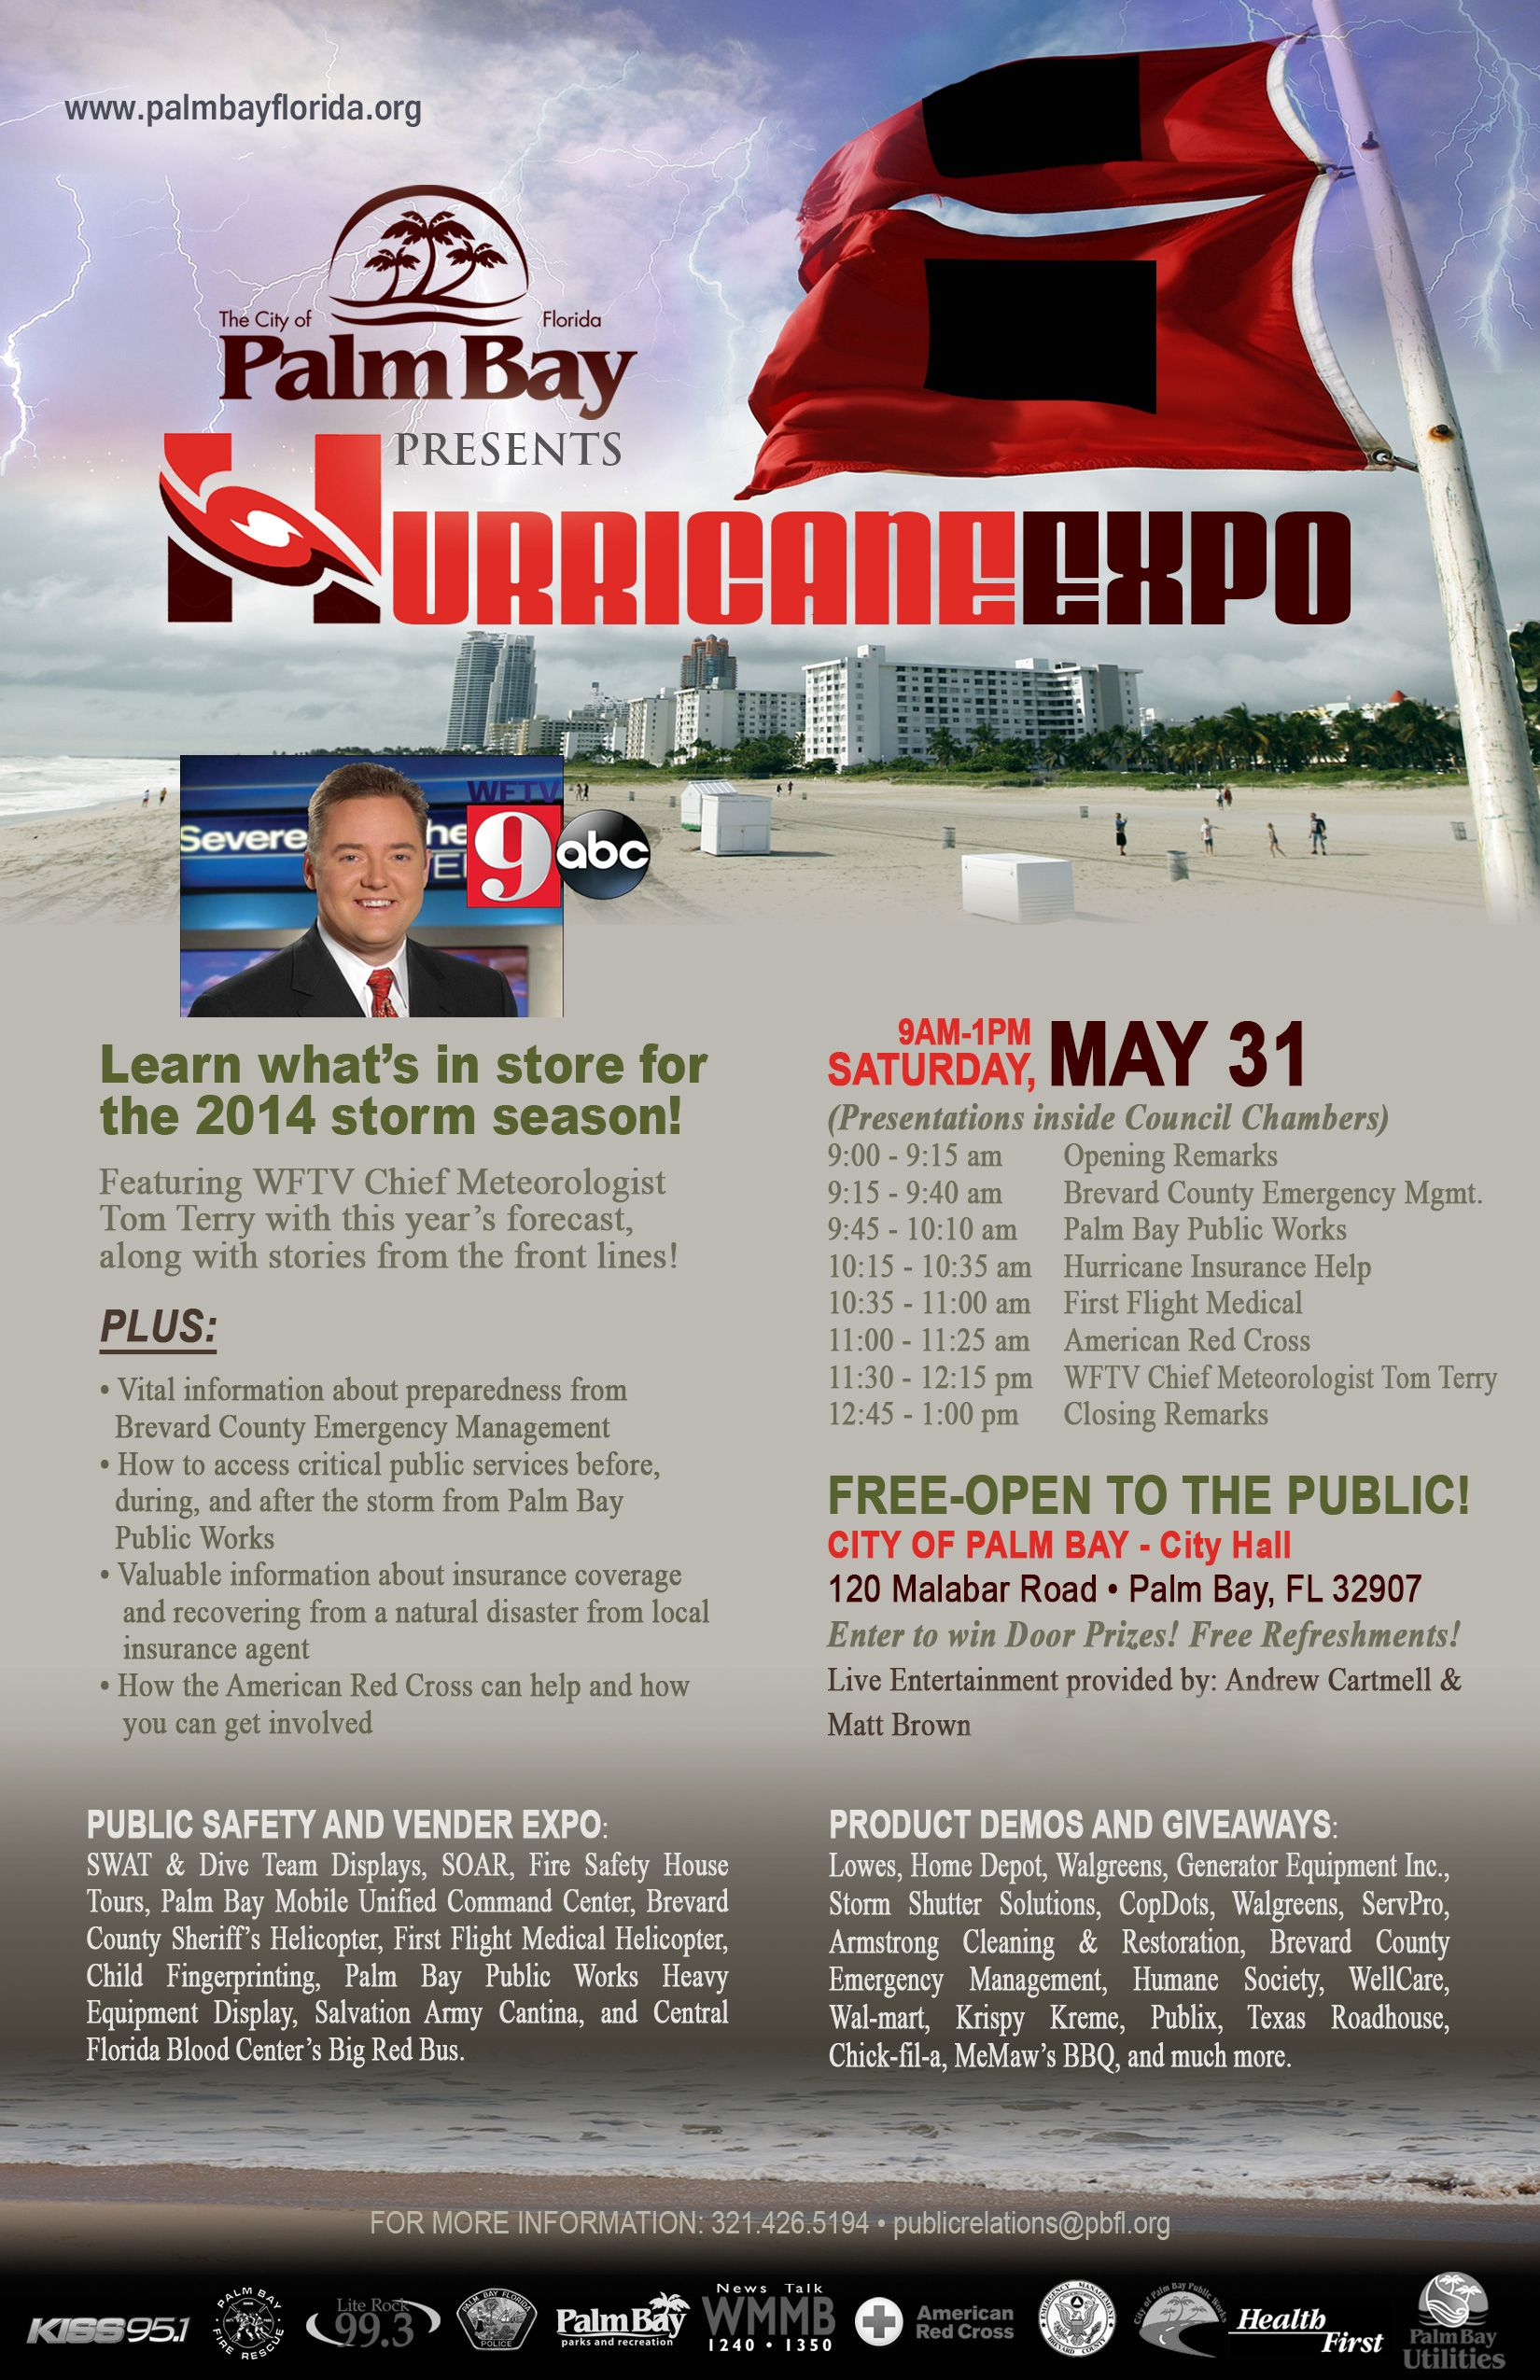 Palm Bay PD 2014 Hurricane Expo is Saturday May 31st from